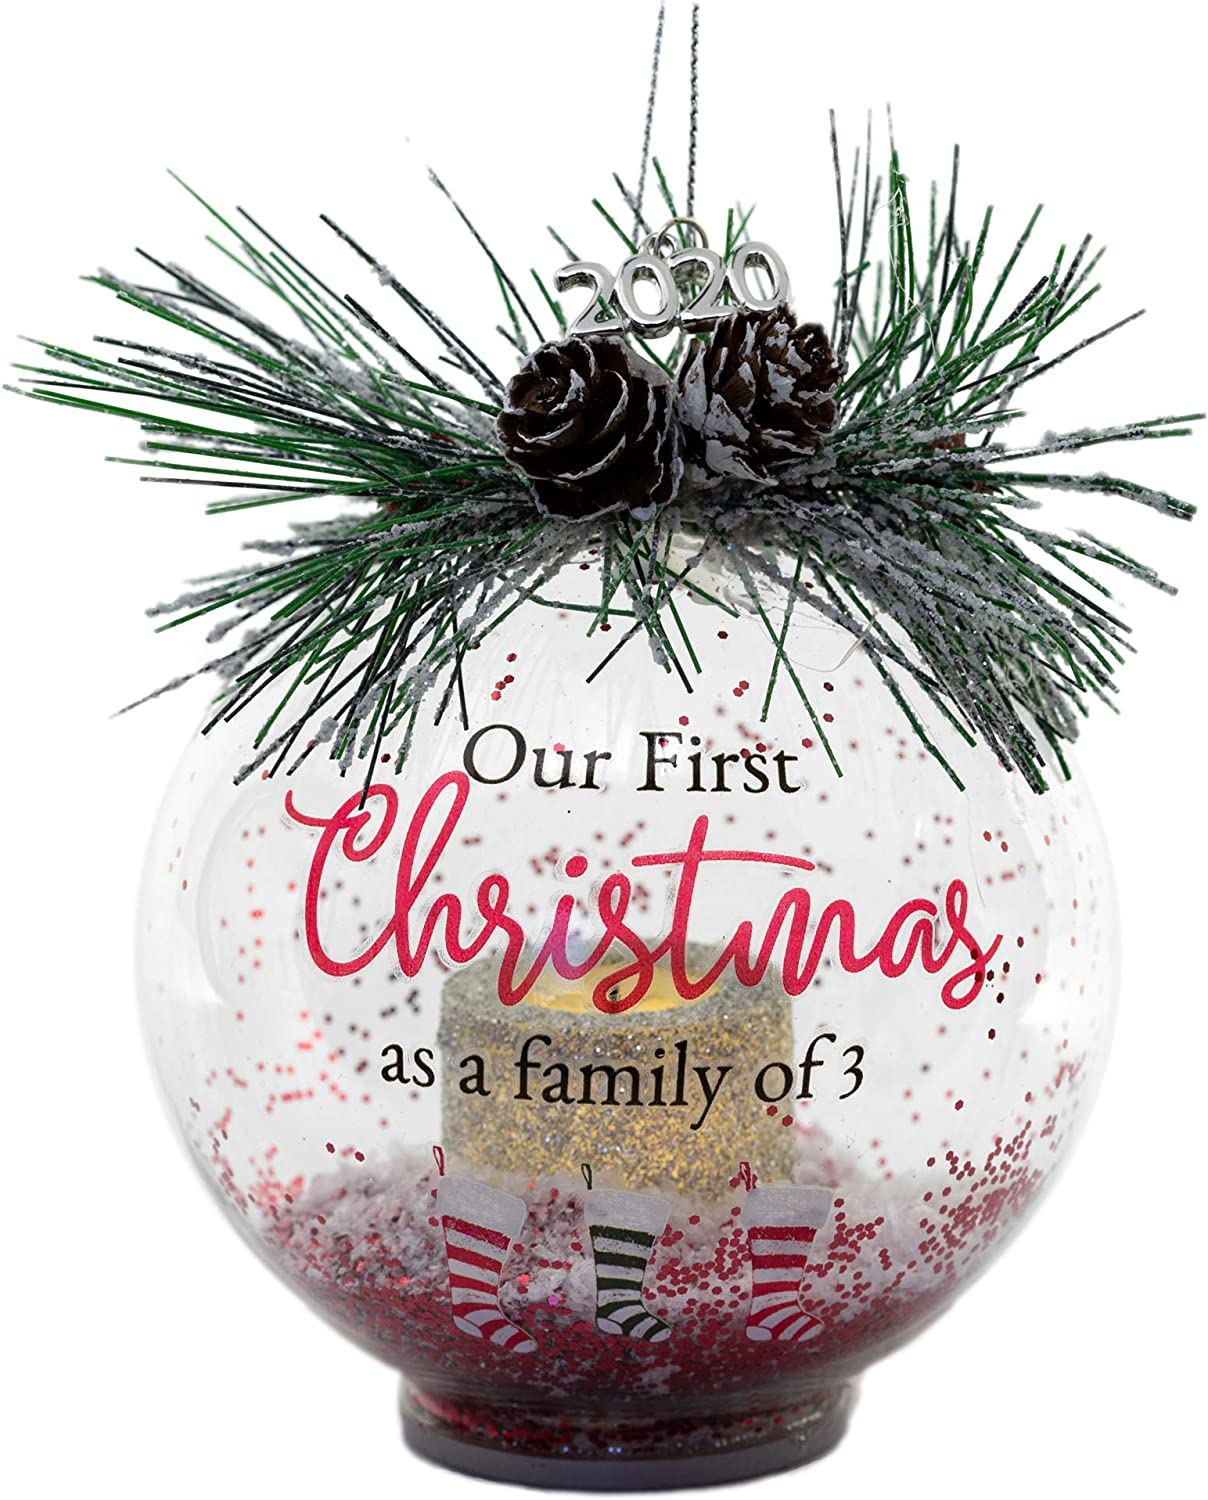 Our First Christmas as A Family of 3 - LED Lighted Glass Ball Ornament with Three Holiday Stockings - 1st Christmas as a New Family Silver 2020 Dated Charm Included - New Parents Mommy Daddy Keepsake